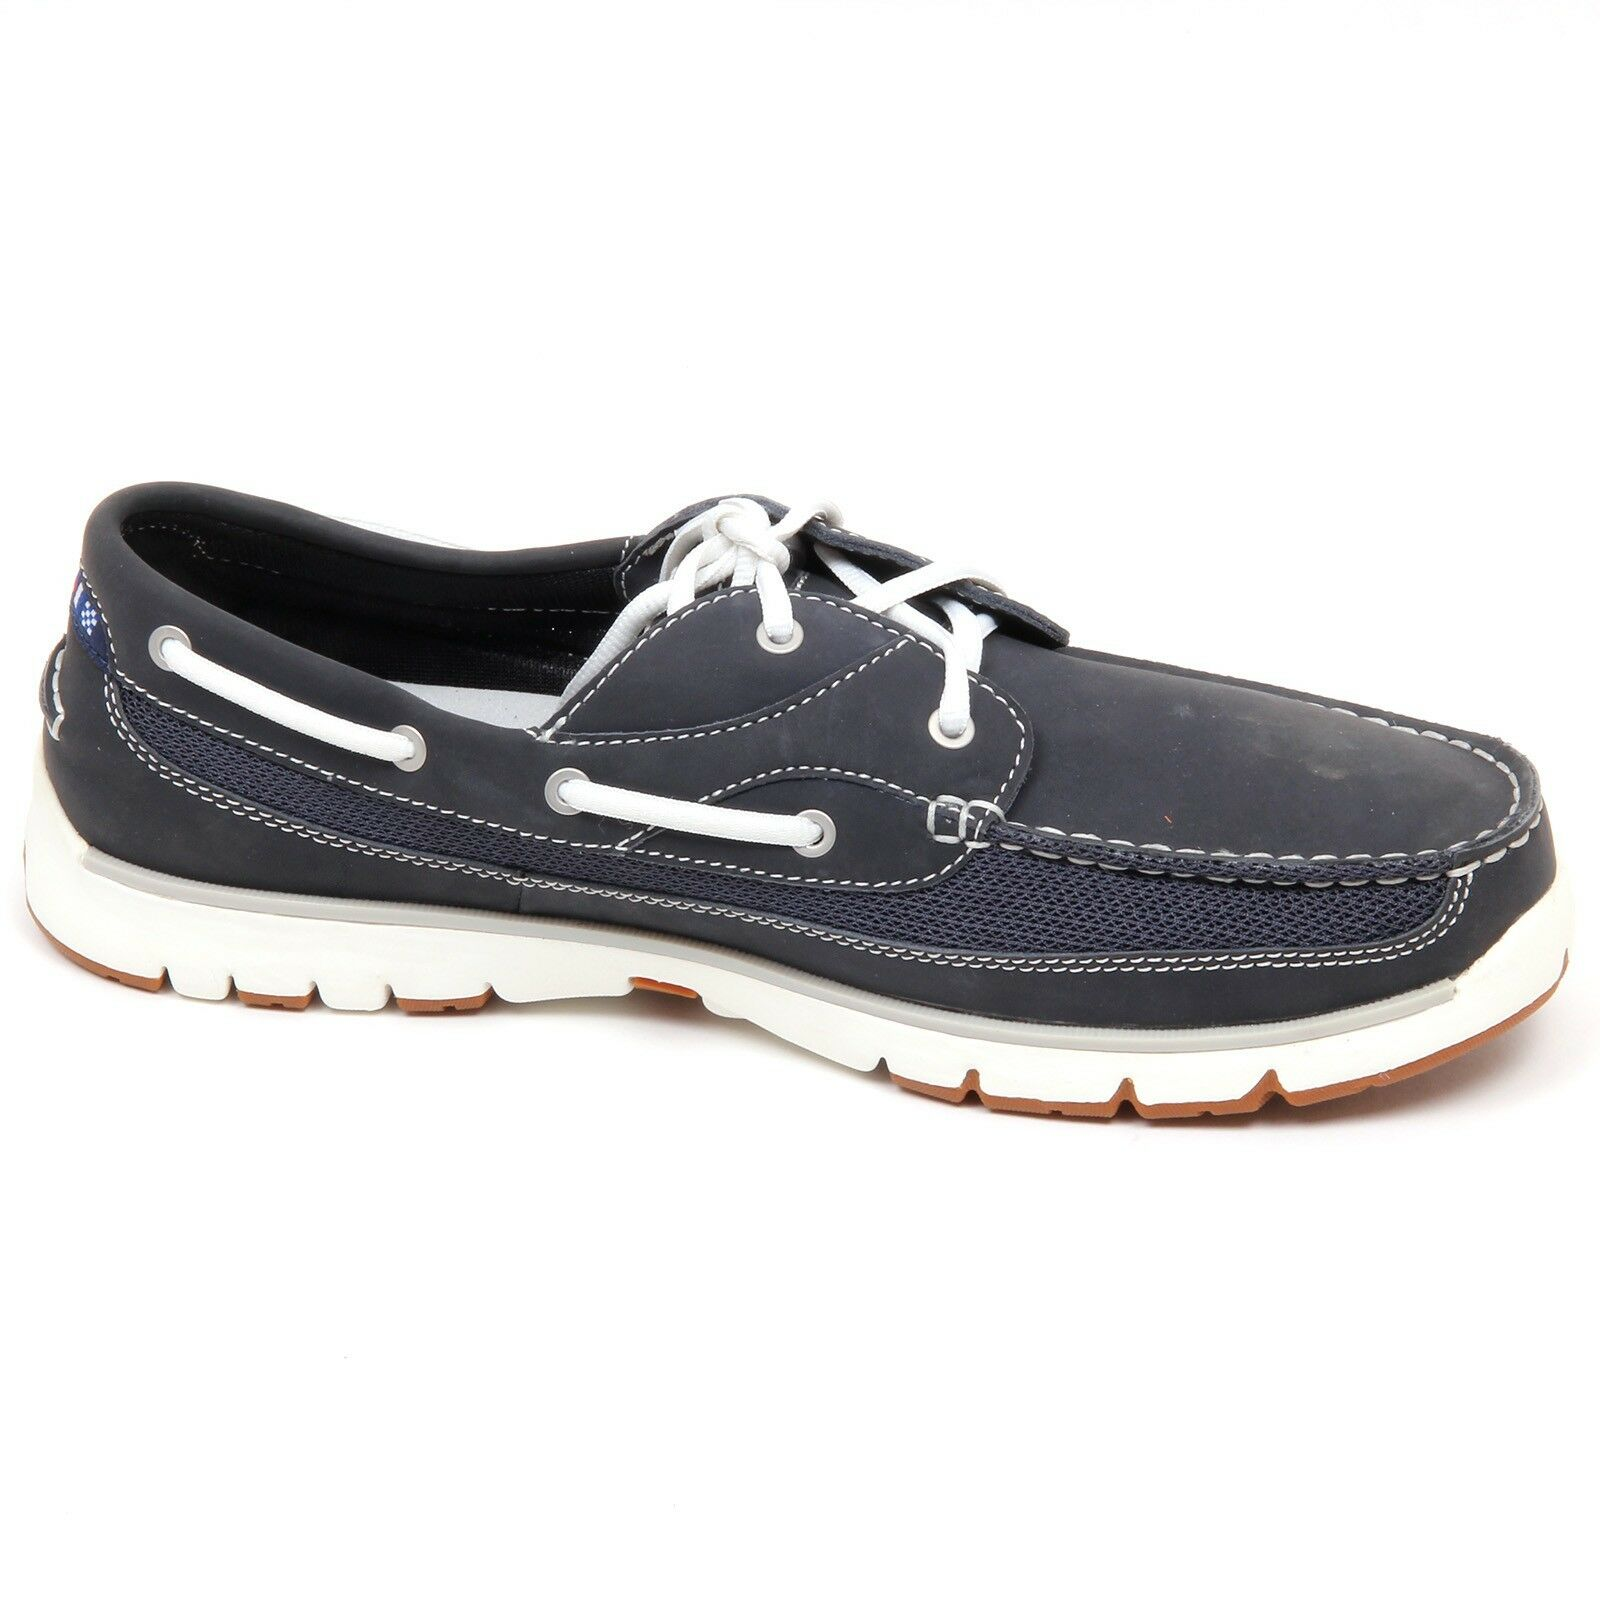 D5064 (SAMPLE (SAMPLE (SAMPLE NOT FOR SALES WITHOUT BOX) mocassino uomo blu L.L.BEAN shoe man 509649